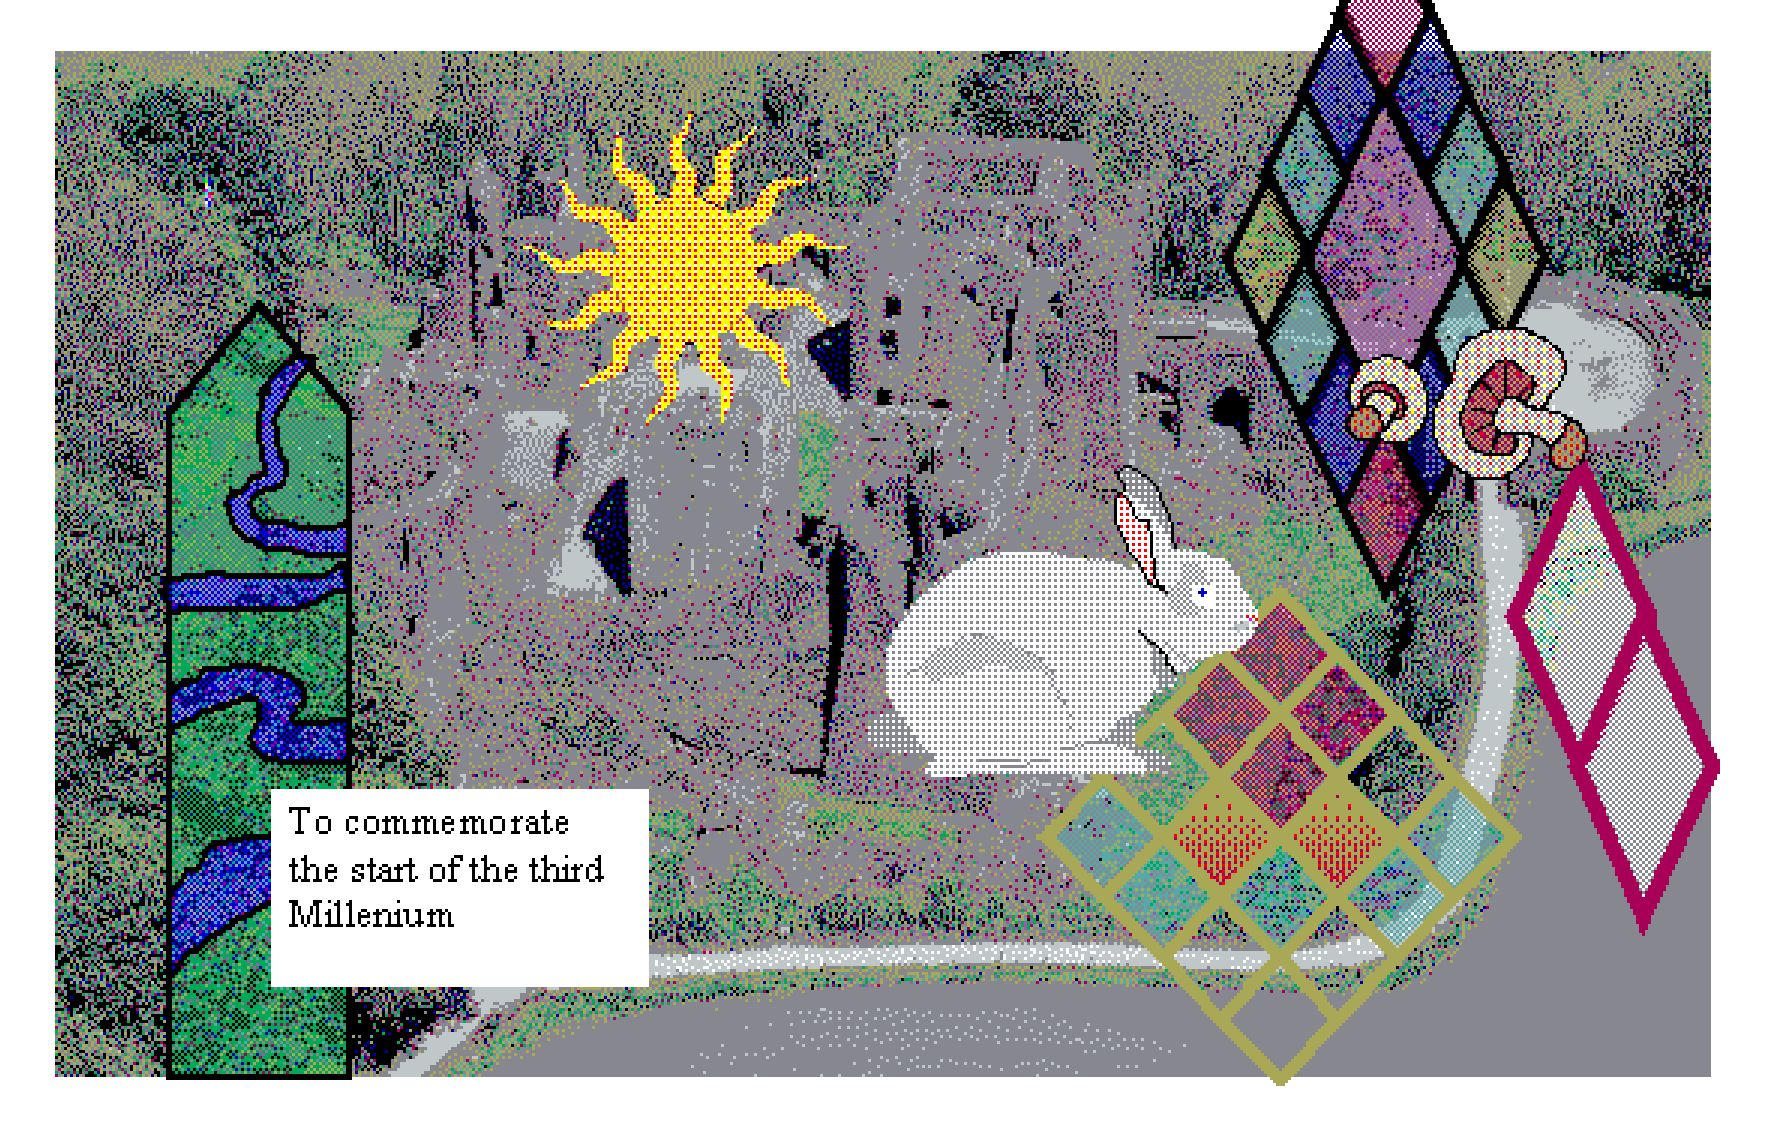 to commemorate the start of the third millenium, the bunny approaches the mushrooms in the church yard. the sun shines down on stained glass.